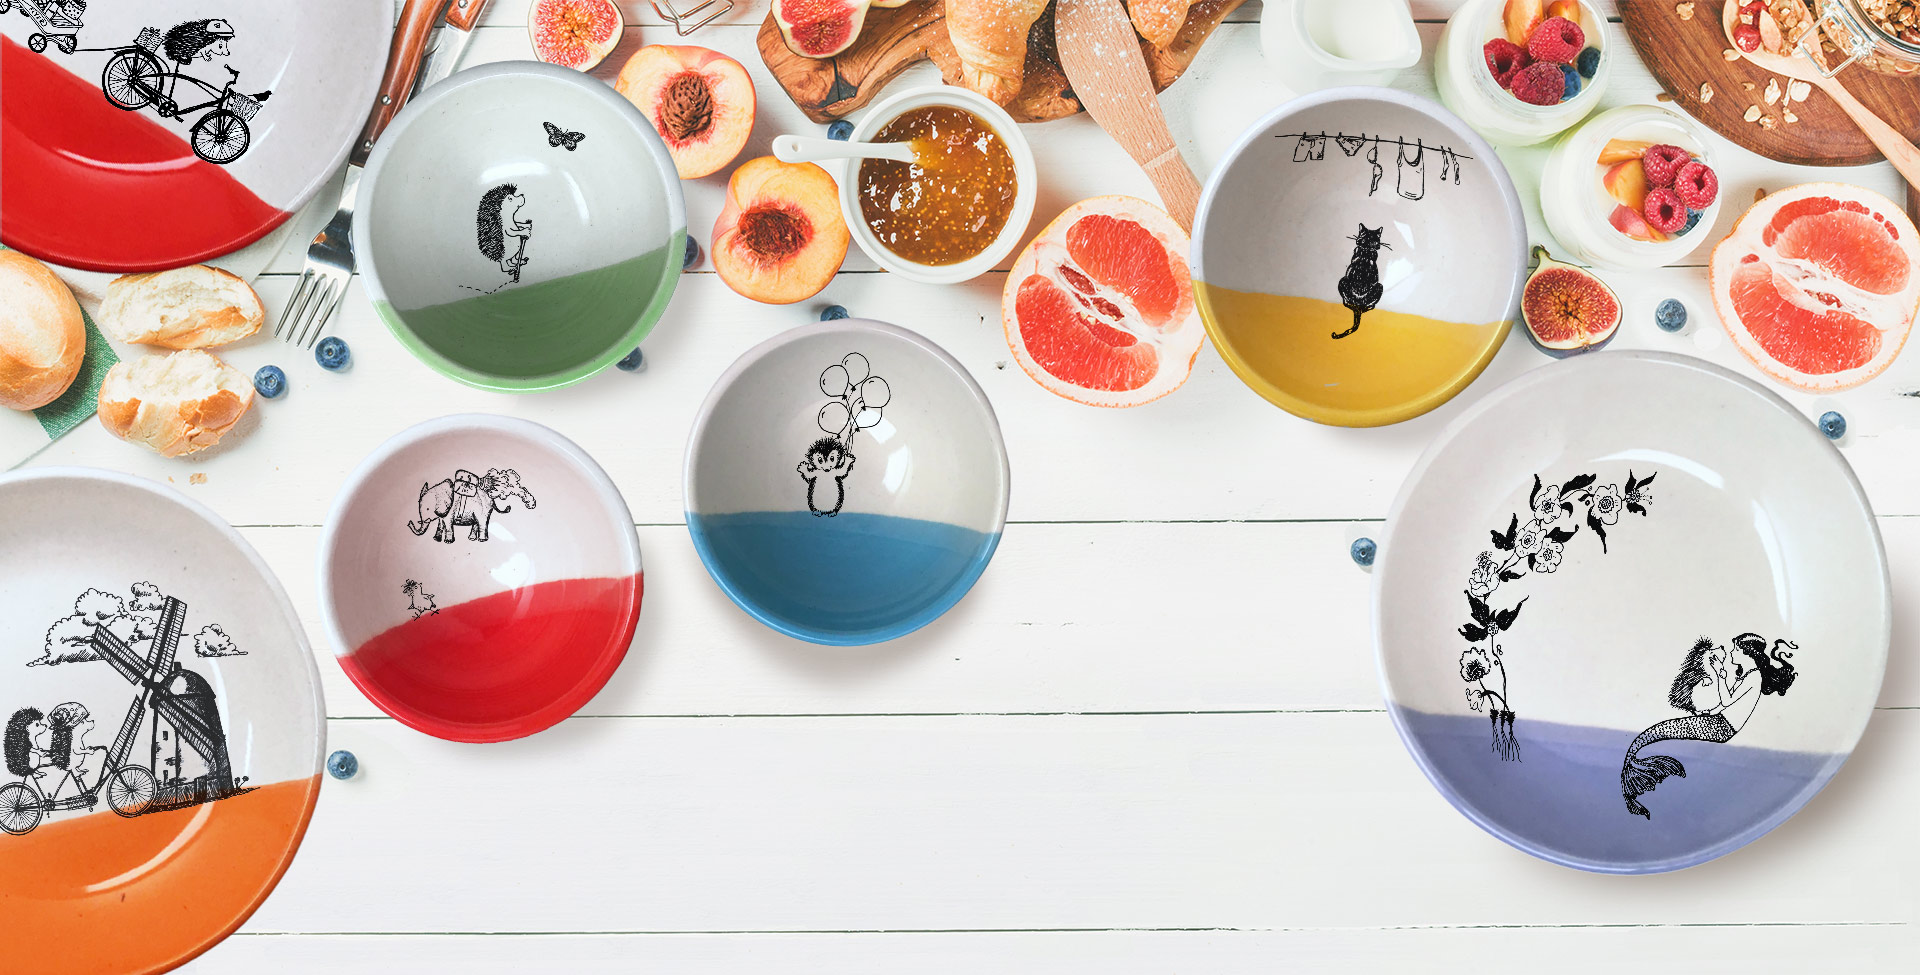 A collection of Darn Pottery's bowls and plates on a colorful table